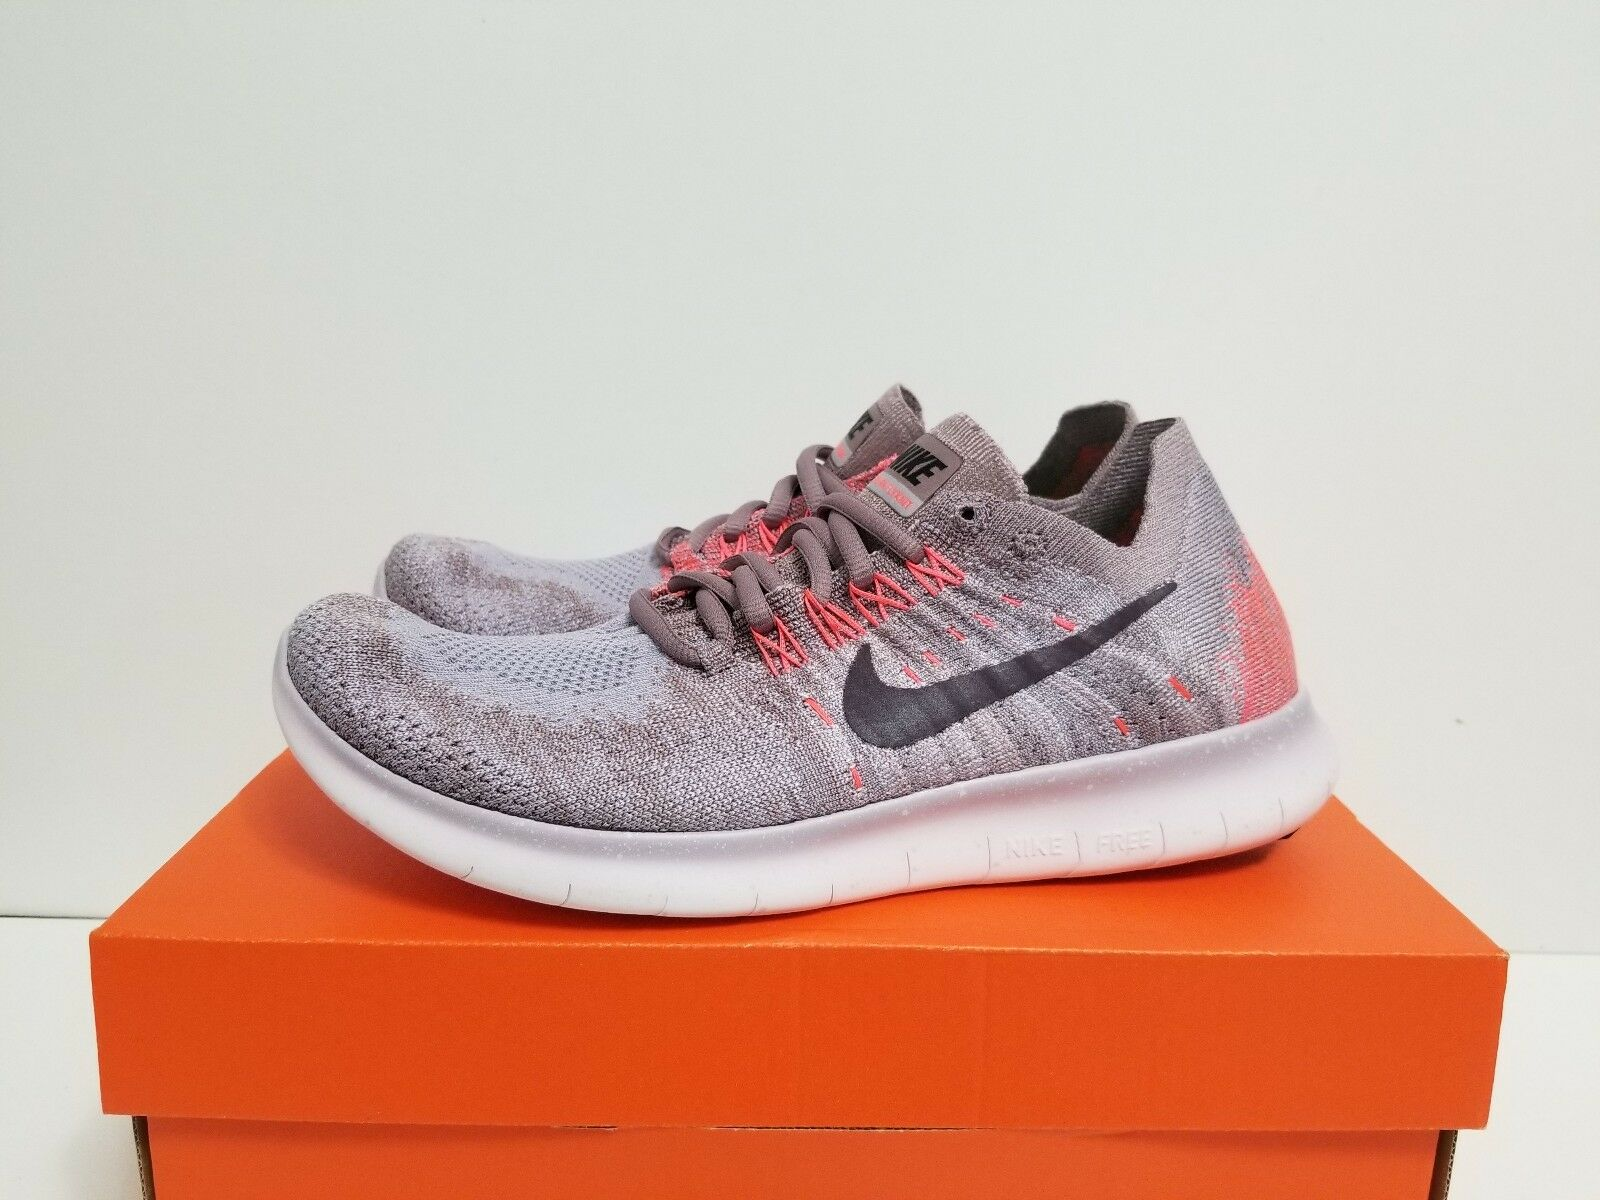 WMNS NIKE FREE RN FLYKNIT 2017 TAUPE GREY PORT WINE-SOLAR RED 880844 200